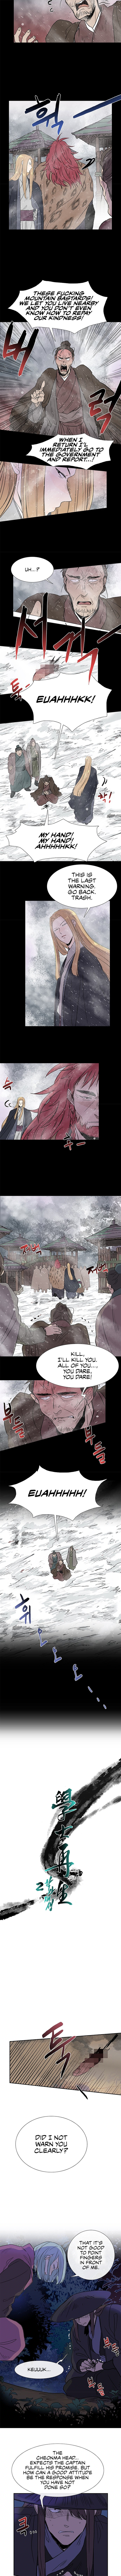 The Scholar's Reincarnation - chapter 117 - #3